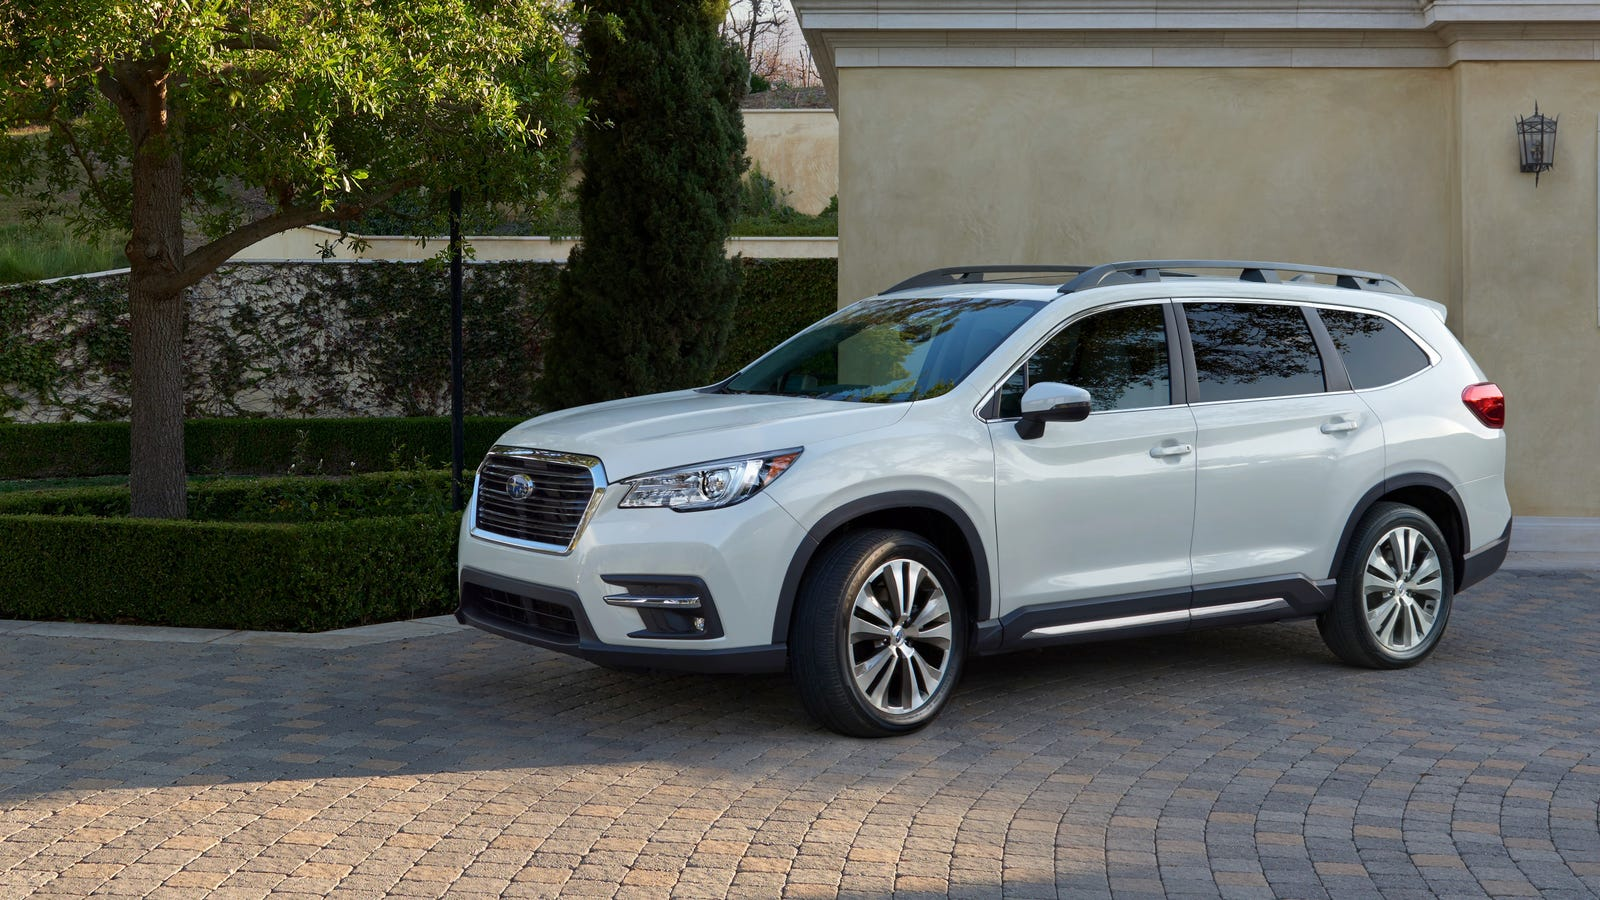 The 2018 Subaru Ascent Prepare To See Three Row Awd Cr 1820823277 on gmc terrain seats 7